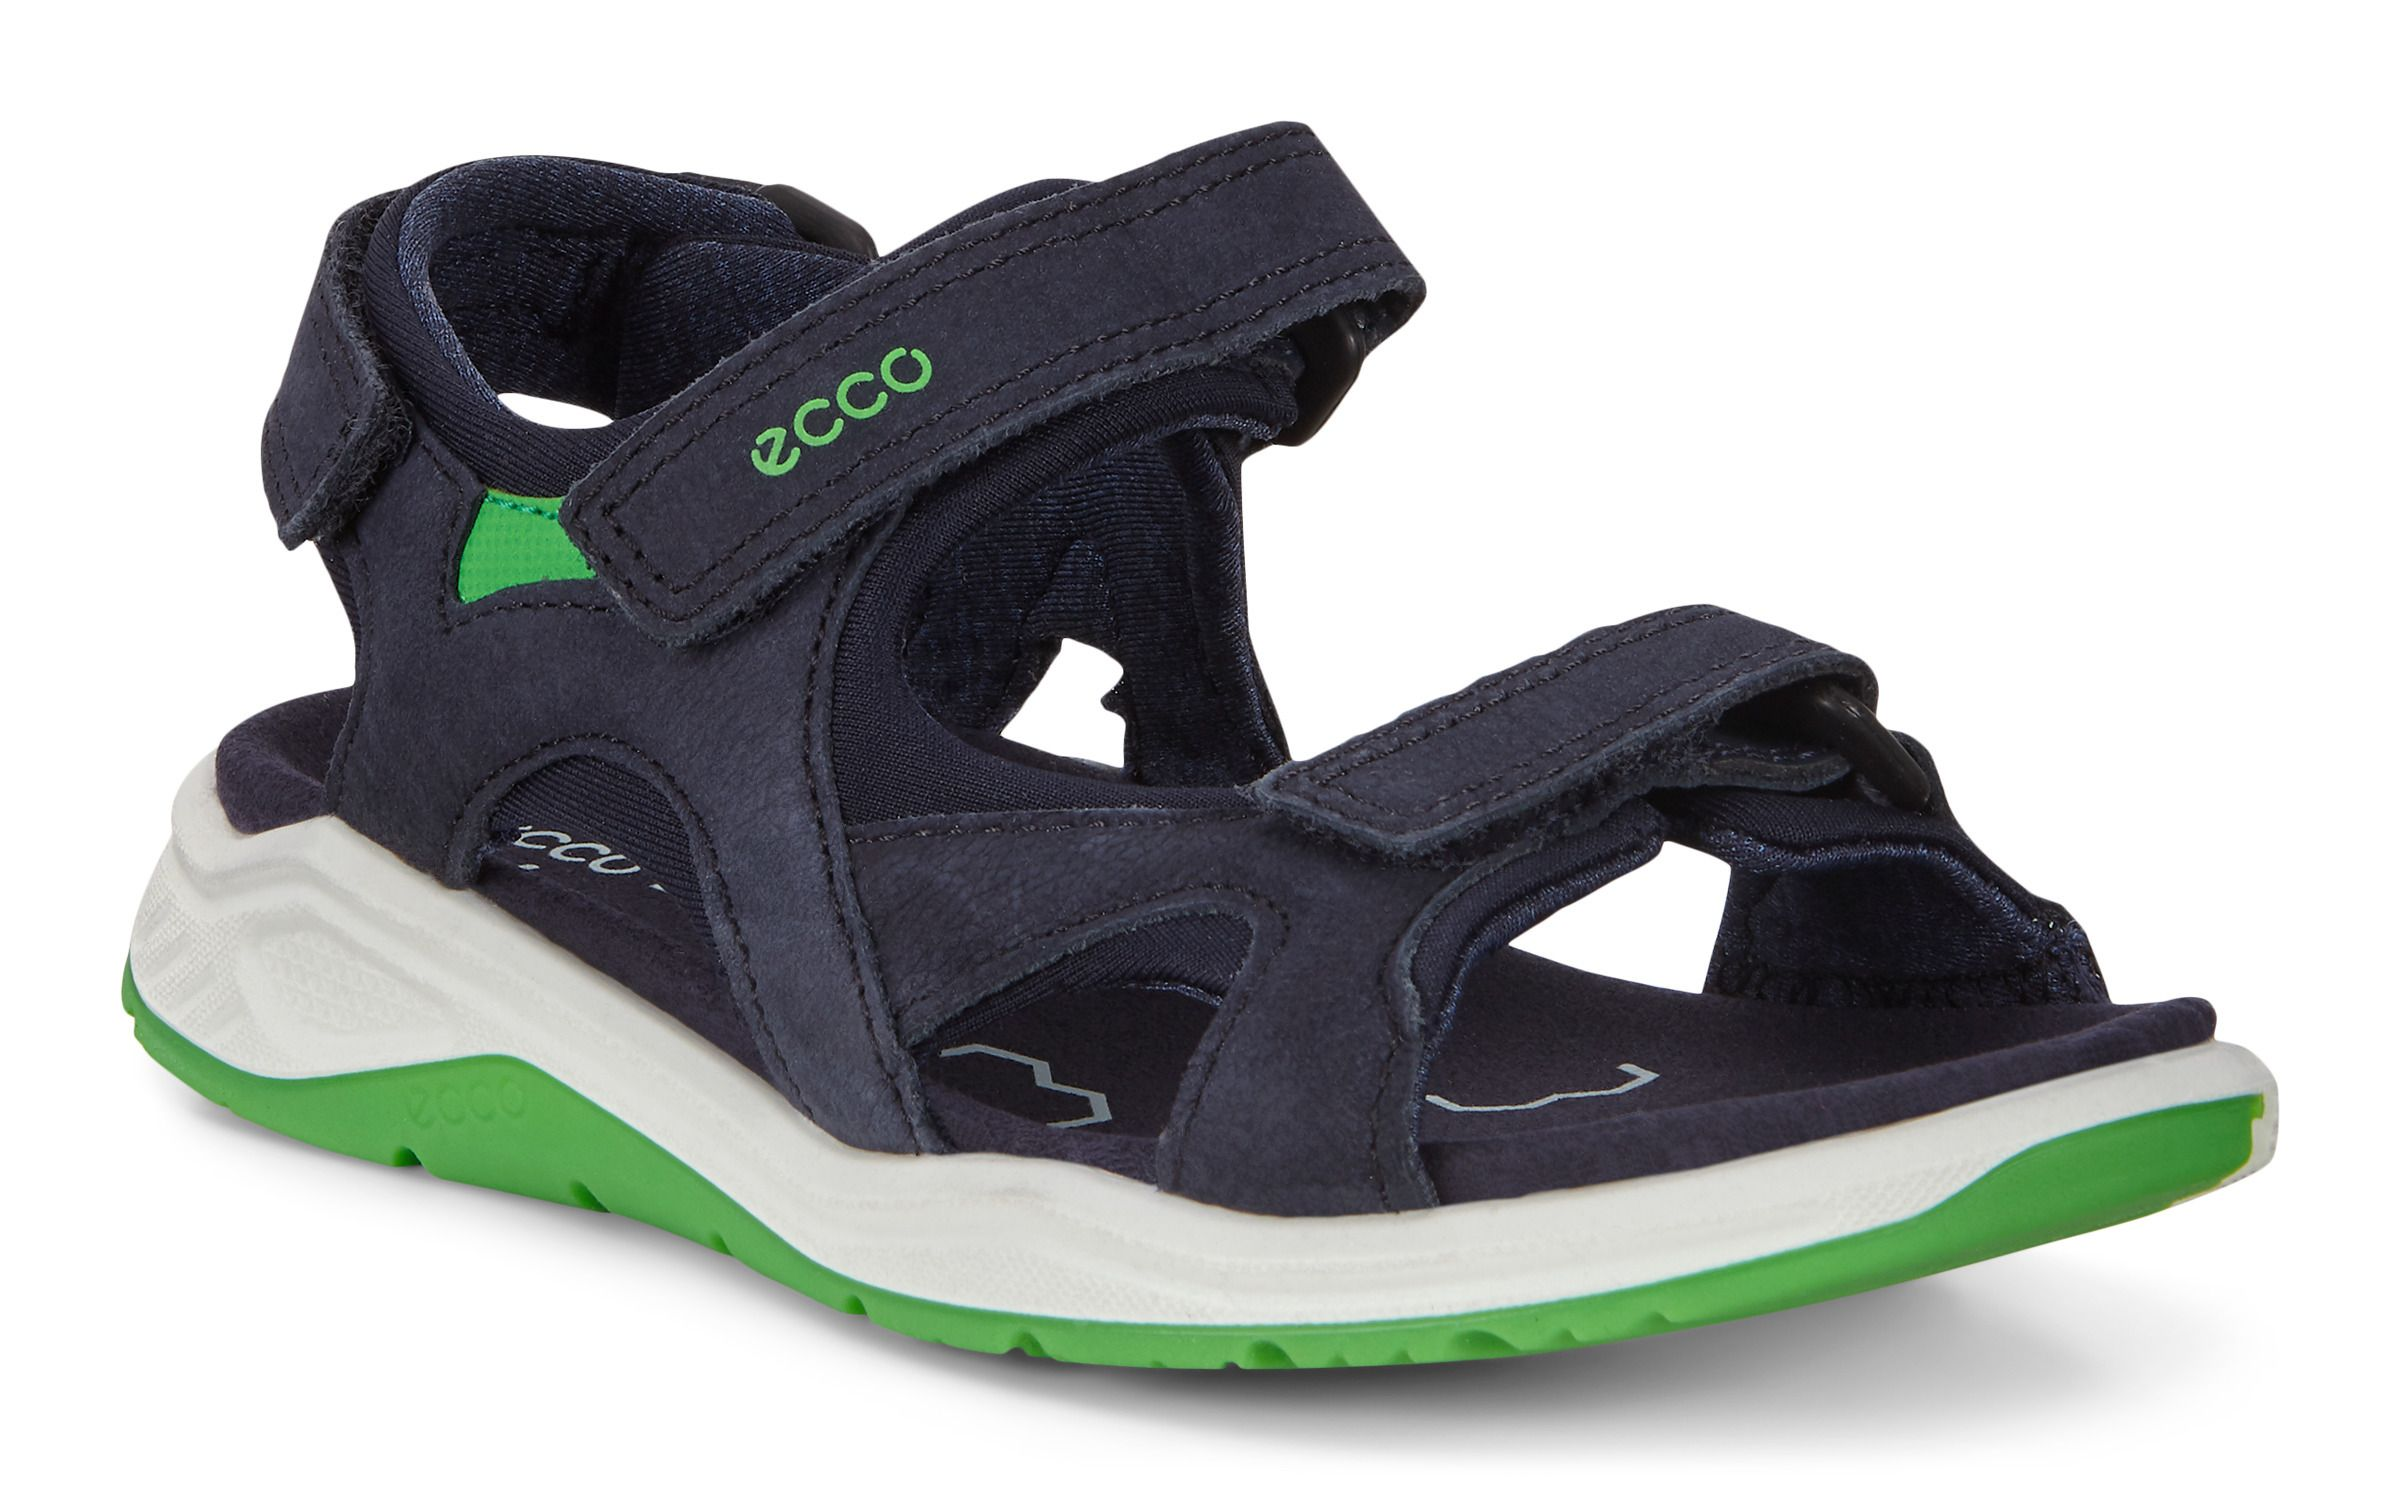 Designs ECCO Babett Womens Sandals In Black Outlet Canada